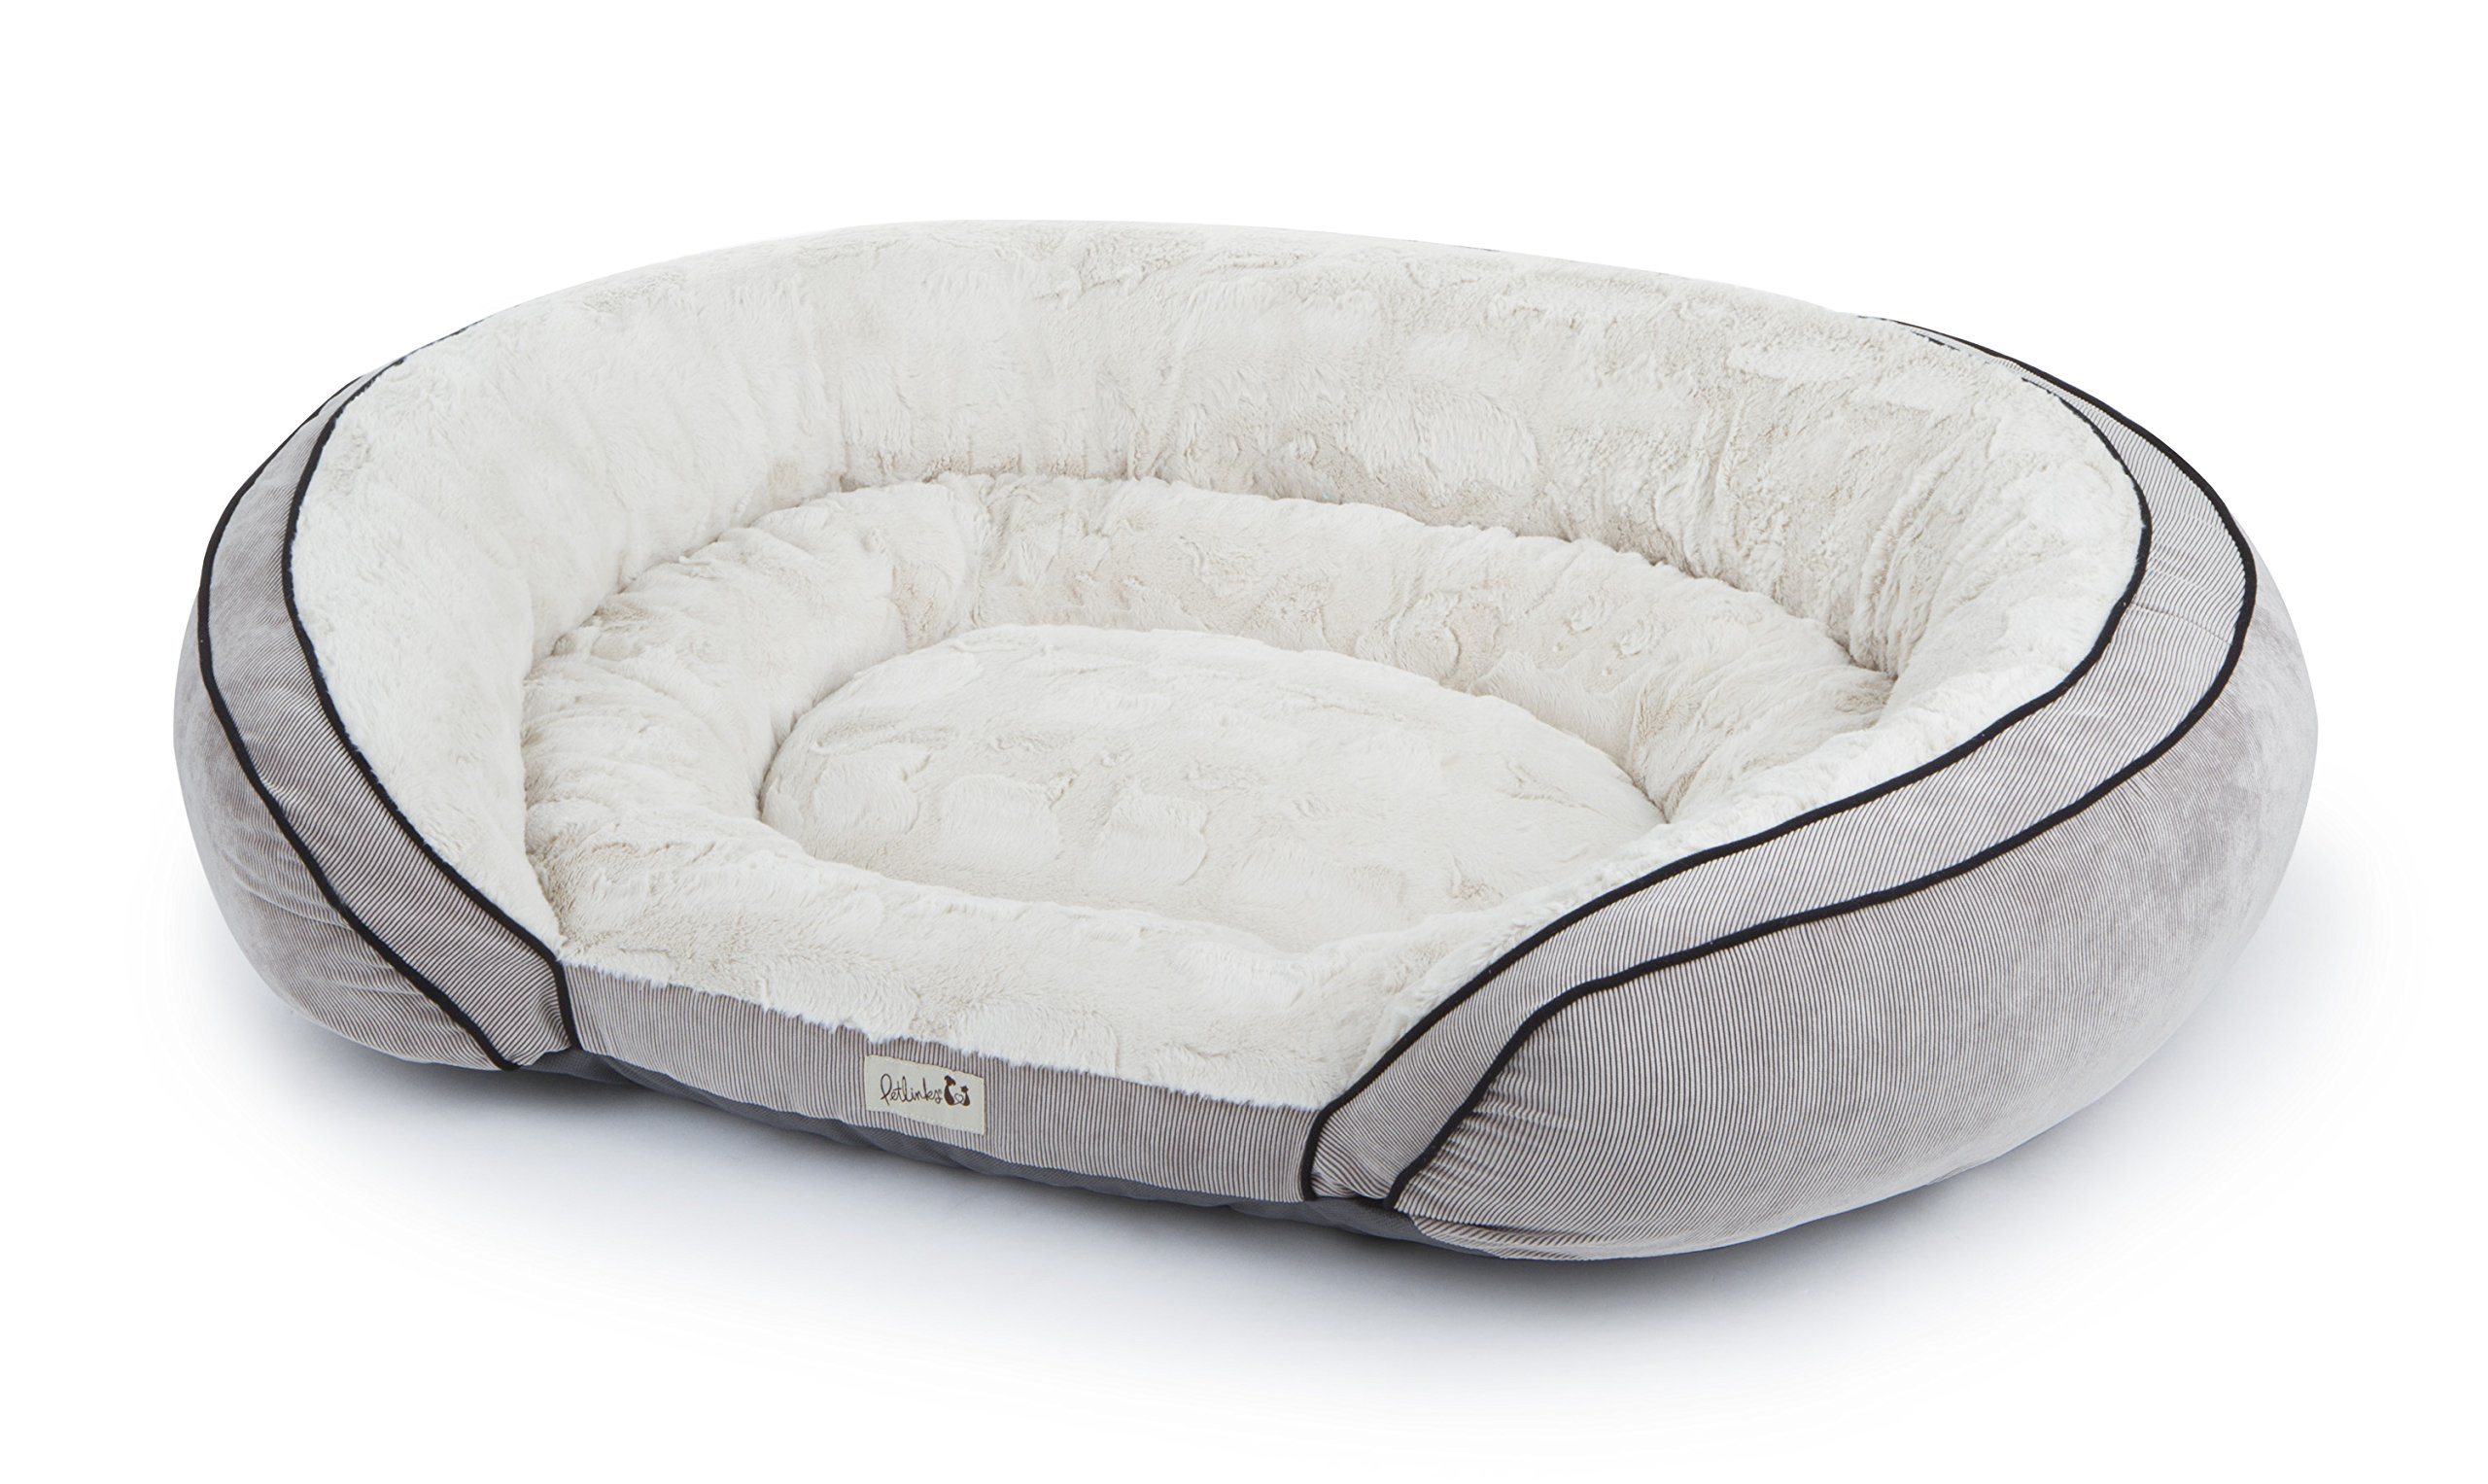 Petlinks Supreme Soother Gel Memory Foam Pet Bed, Large, Natural Plush/Gray Corduroy by Petlinks